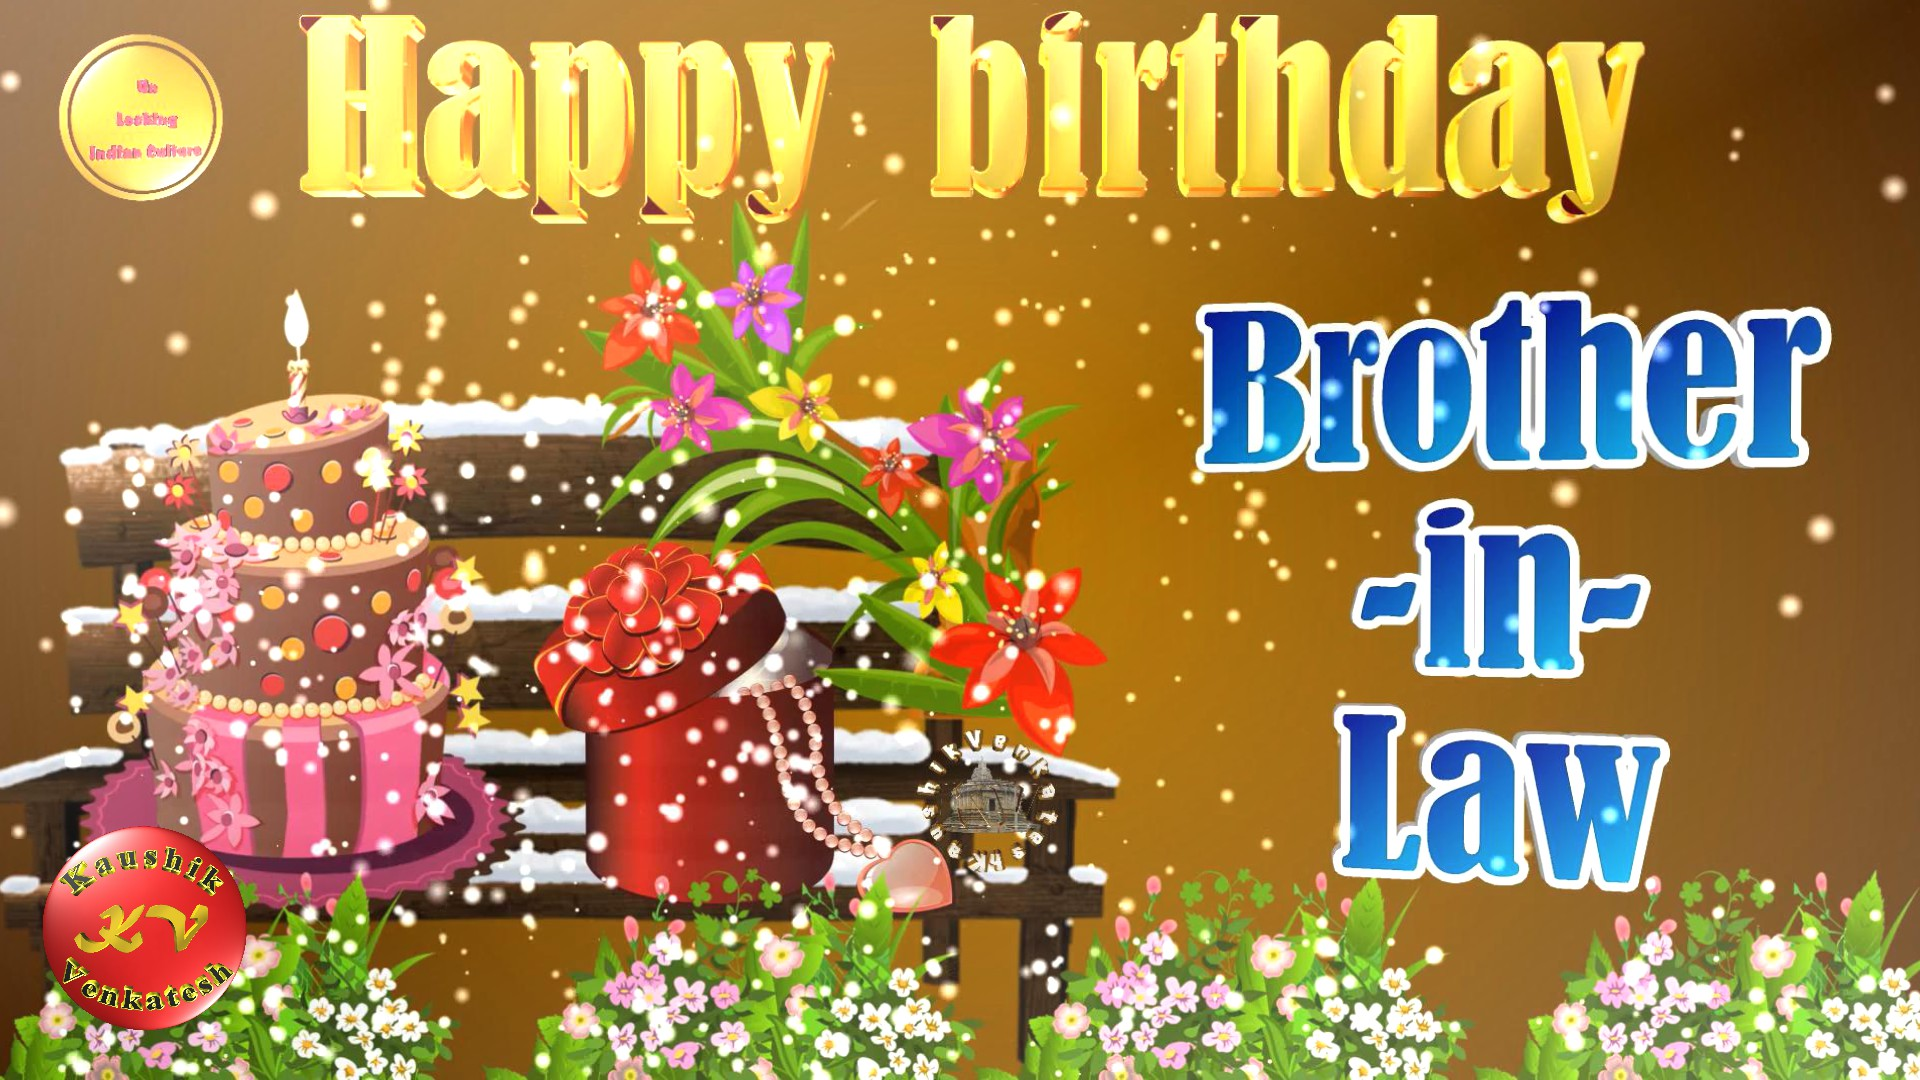 Greetings Image for the Birthday of your brother-in-law.